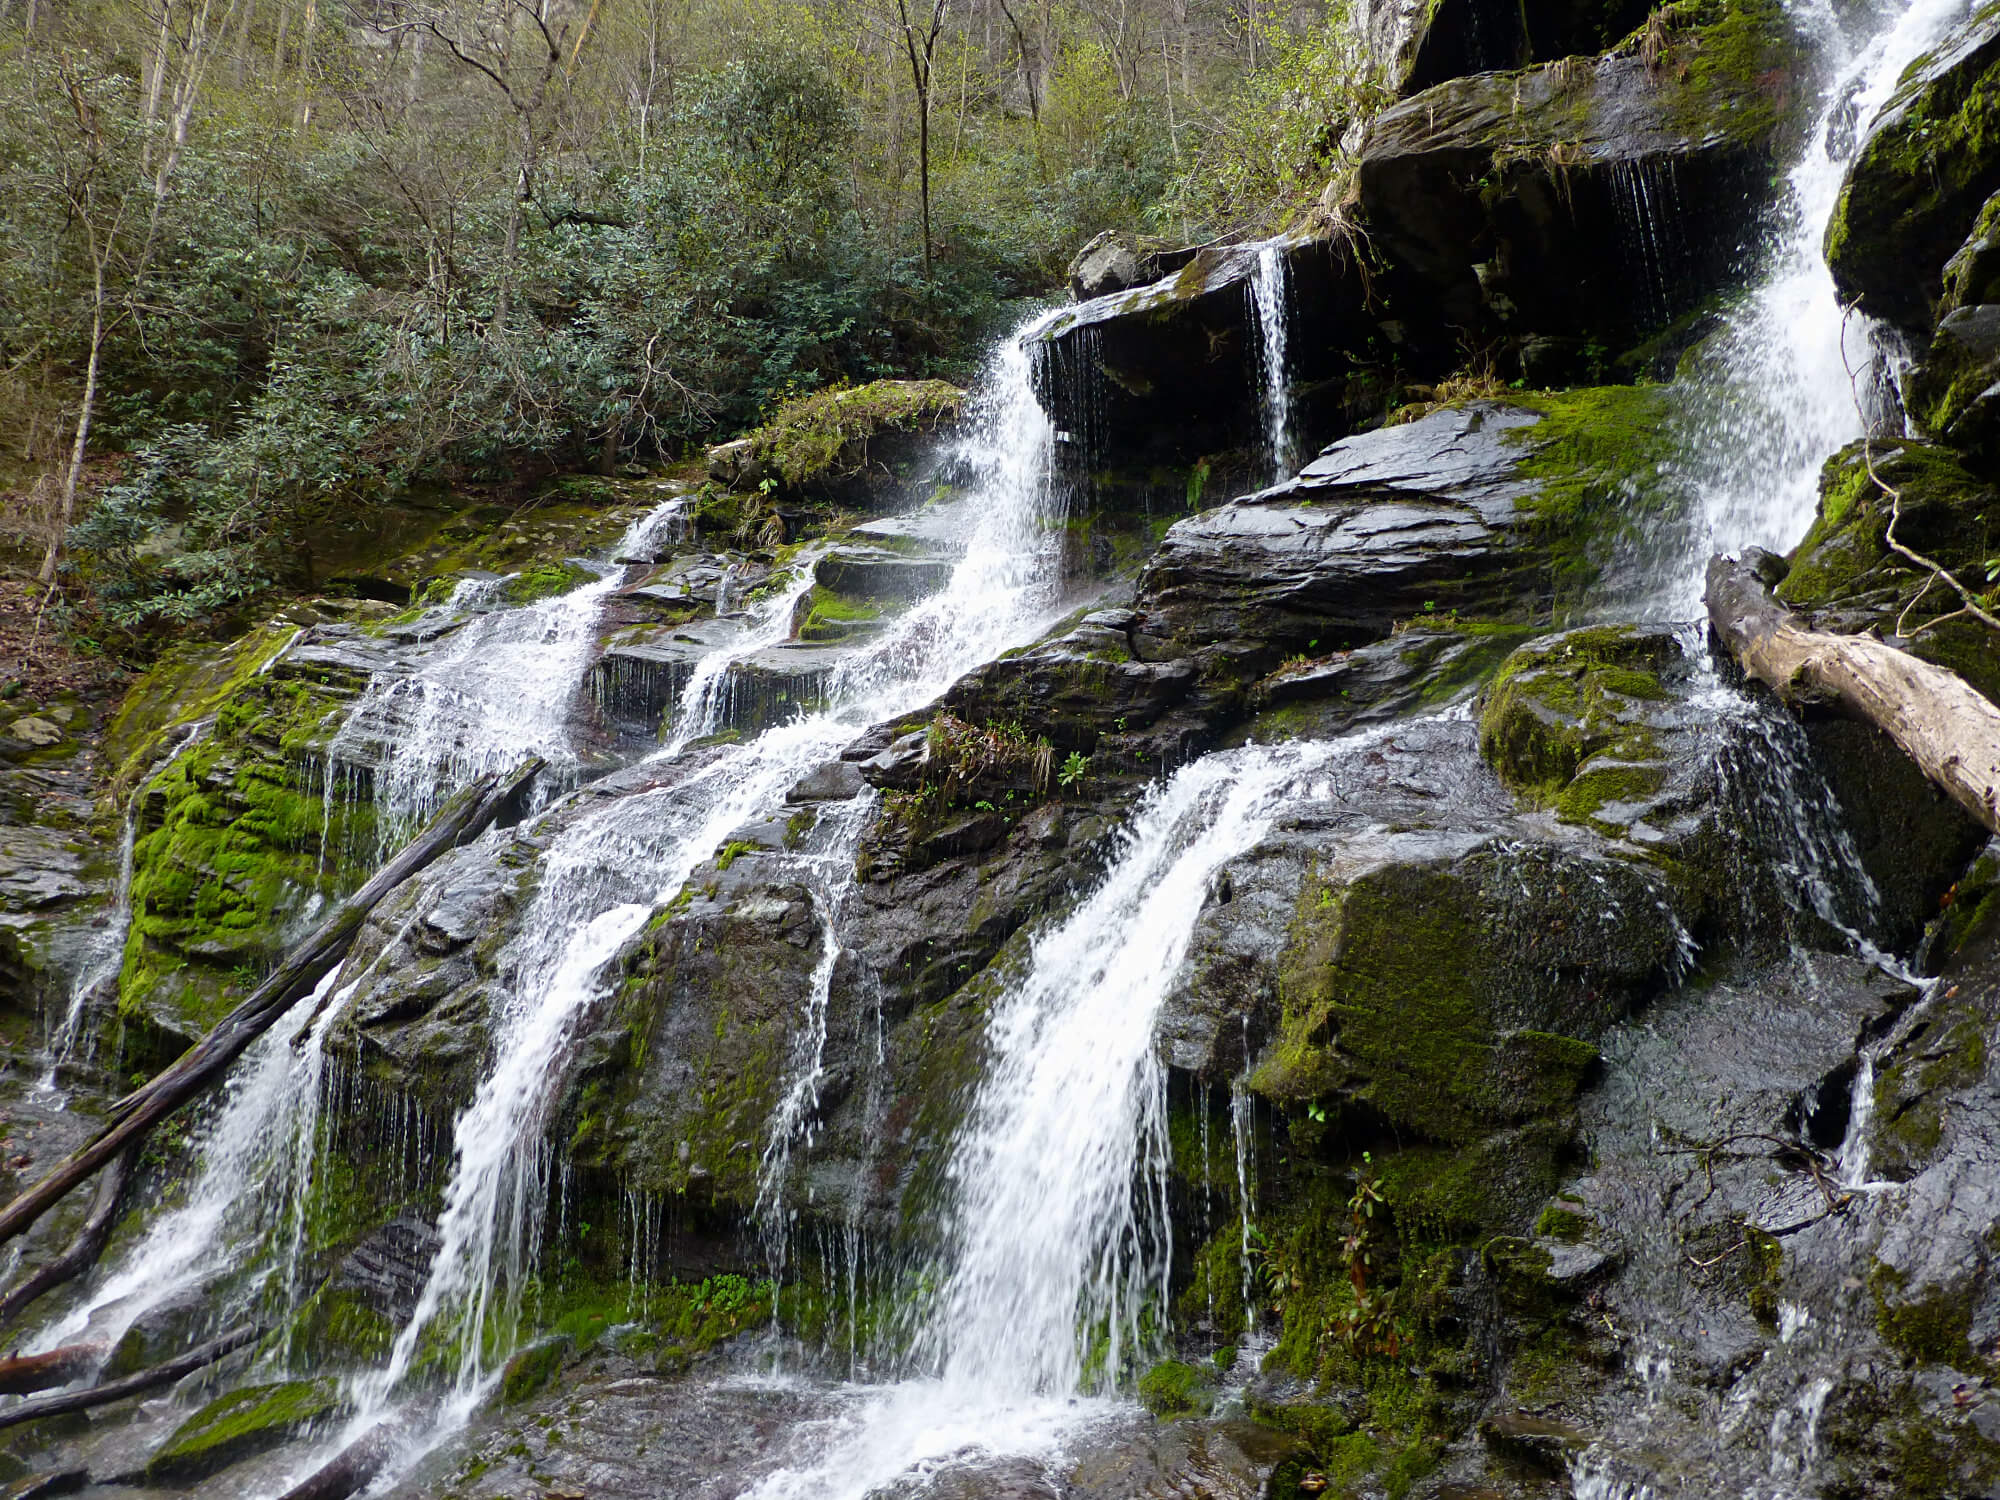 Portion of a waterfall with water spilling over several moss-covered boulders